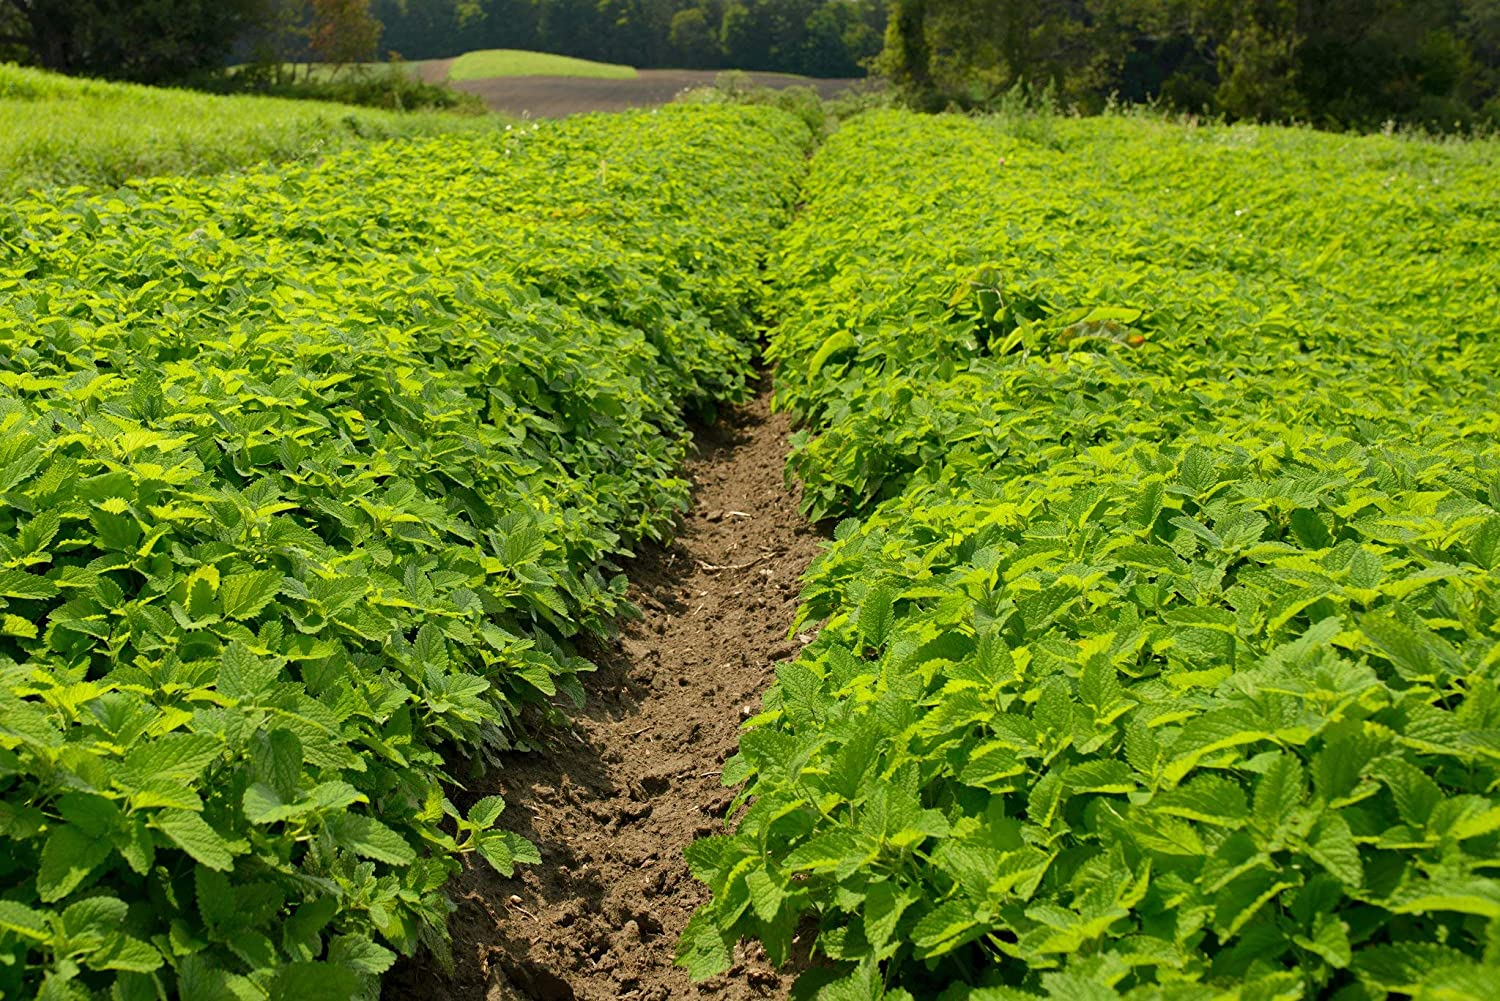 Lemon Balm 25g Quantity Options 0.25g Approx Melissa officinalis 5g 0.25g Approx. 400 Seeds 400 Seeds